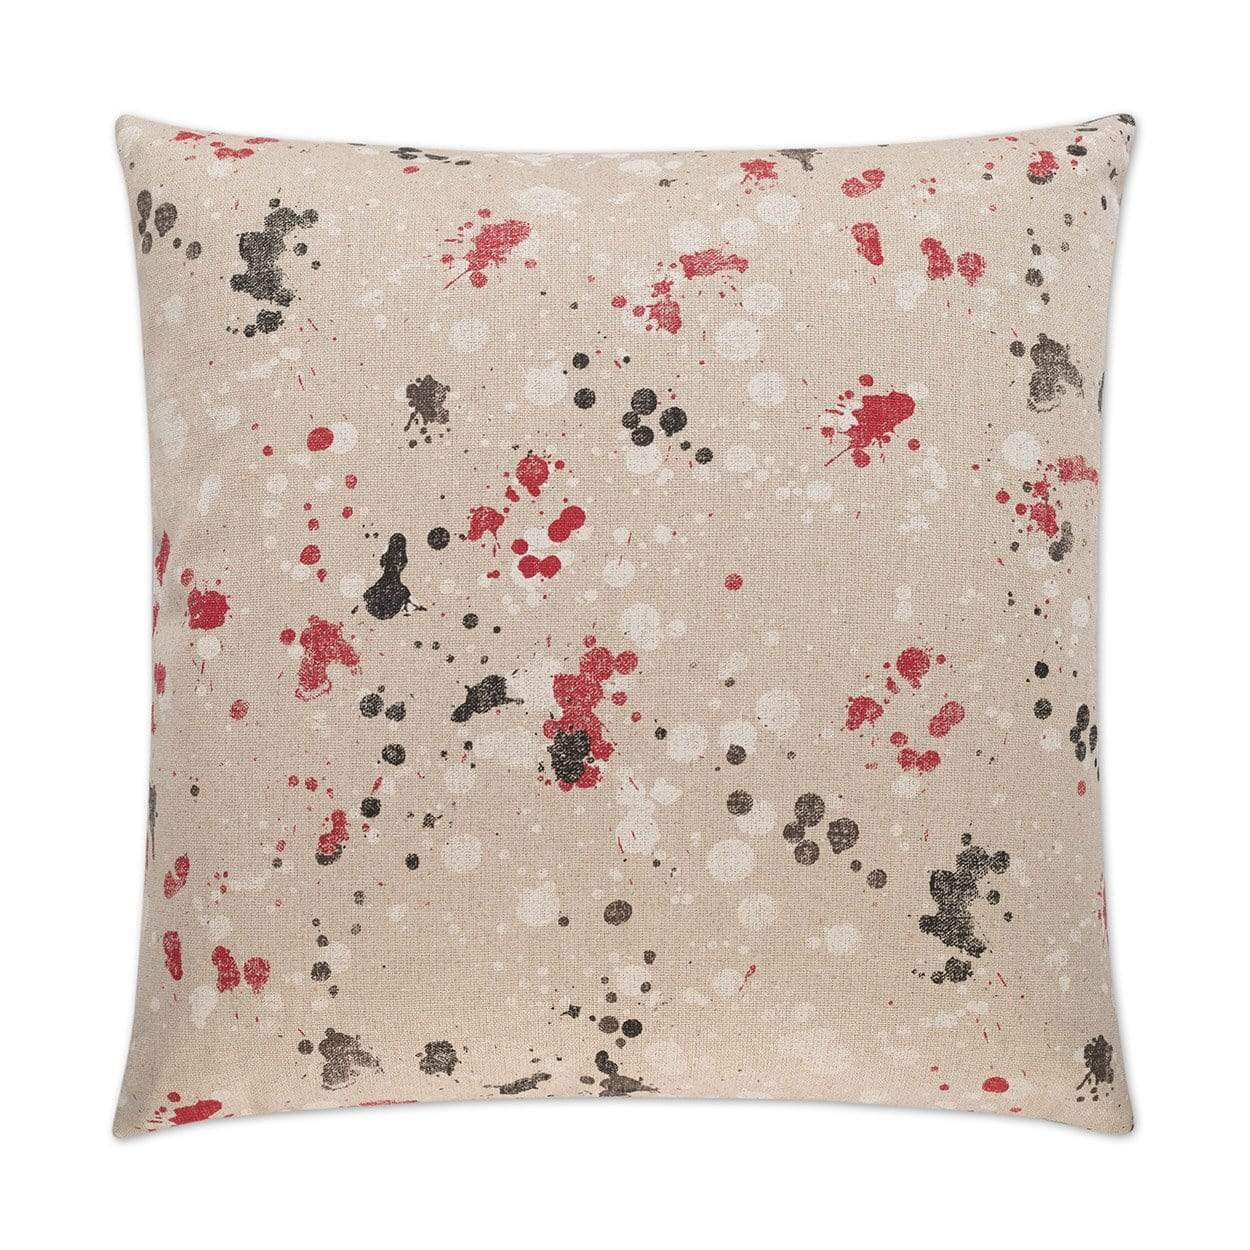 D.V. Kap D.V. Kap Dropcloth Pillow - Available in 2 Colors Orange 2397-O